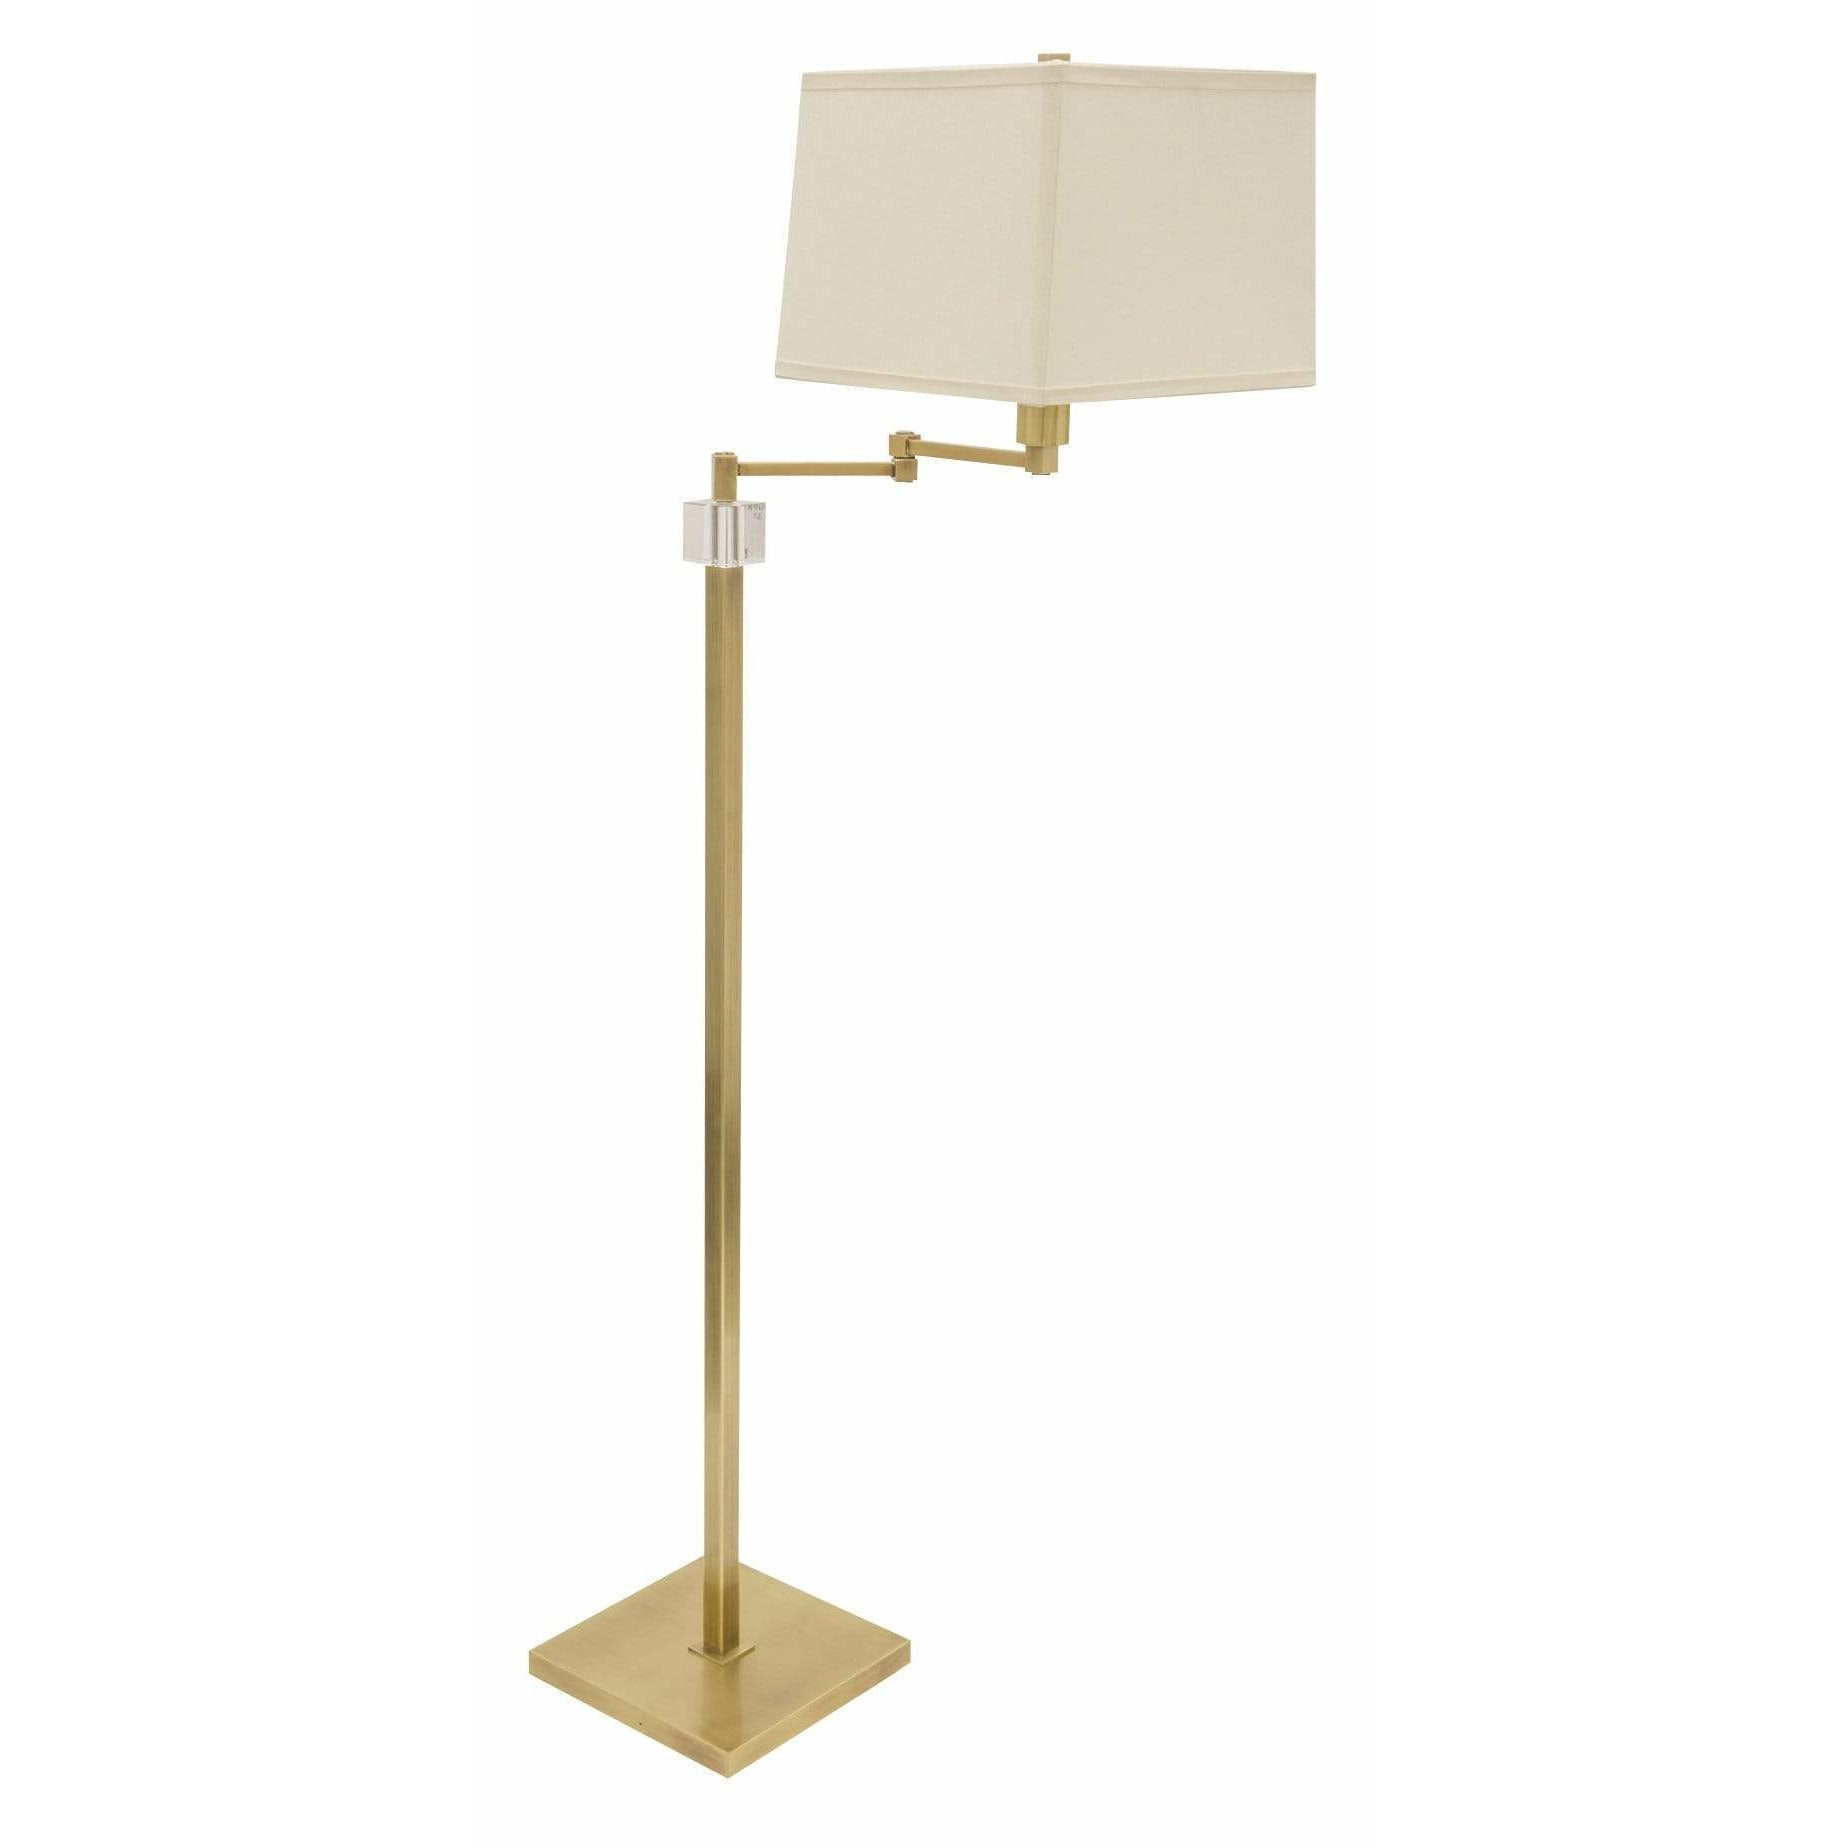 House Of Troy Floor Lamps Somerset Floor Lamp by House Of Troy S901-AB